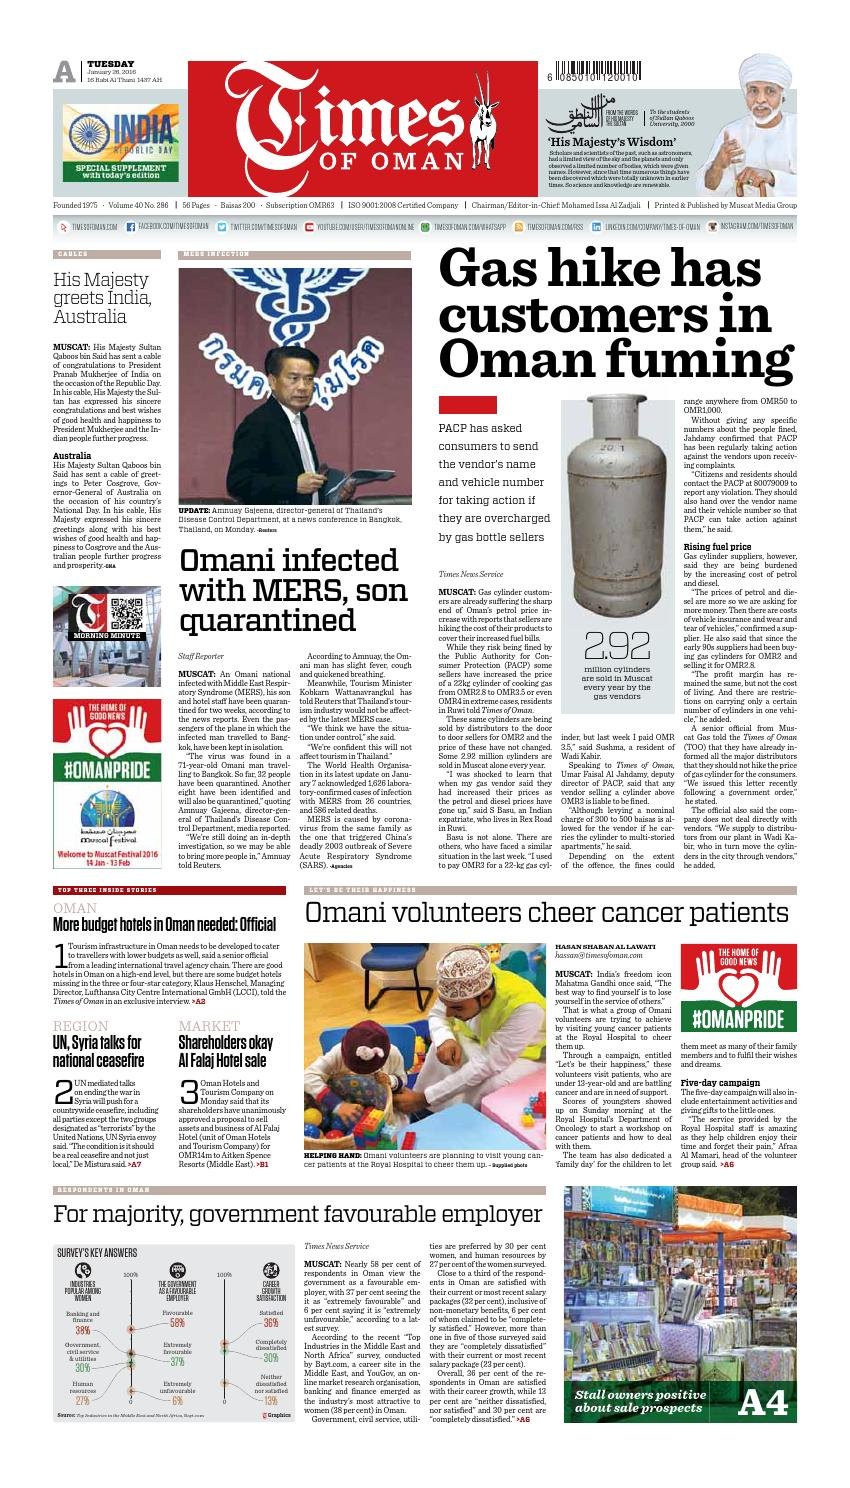 Times of Oman - January 26, 2016 by Muscat Media Group - issuu